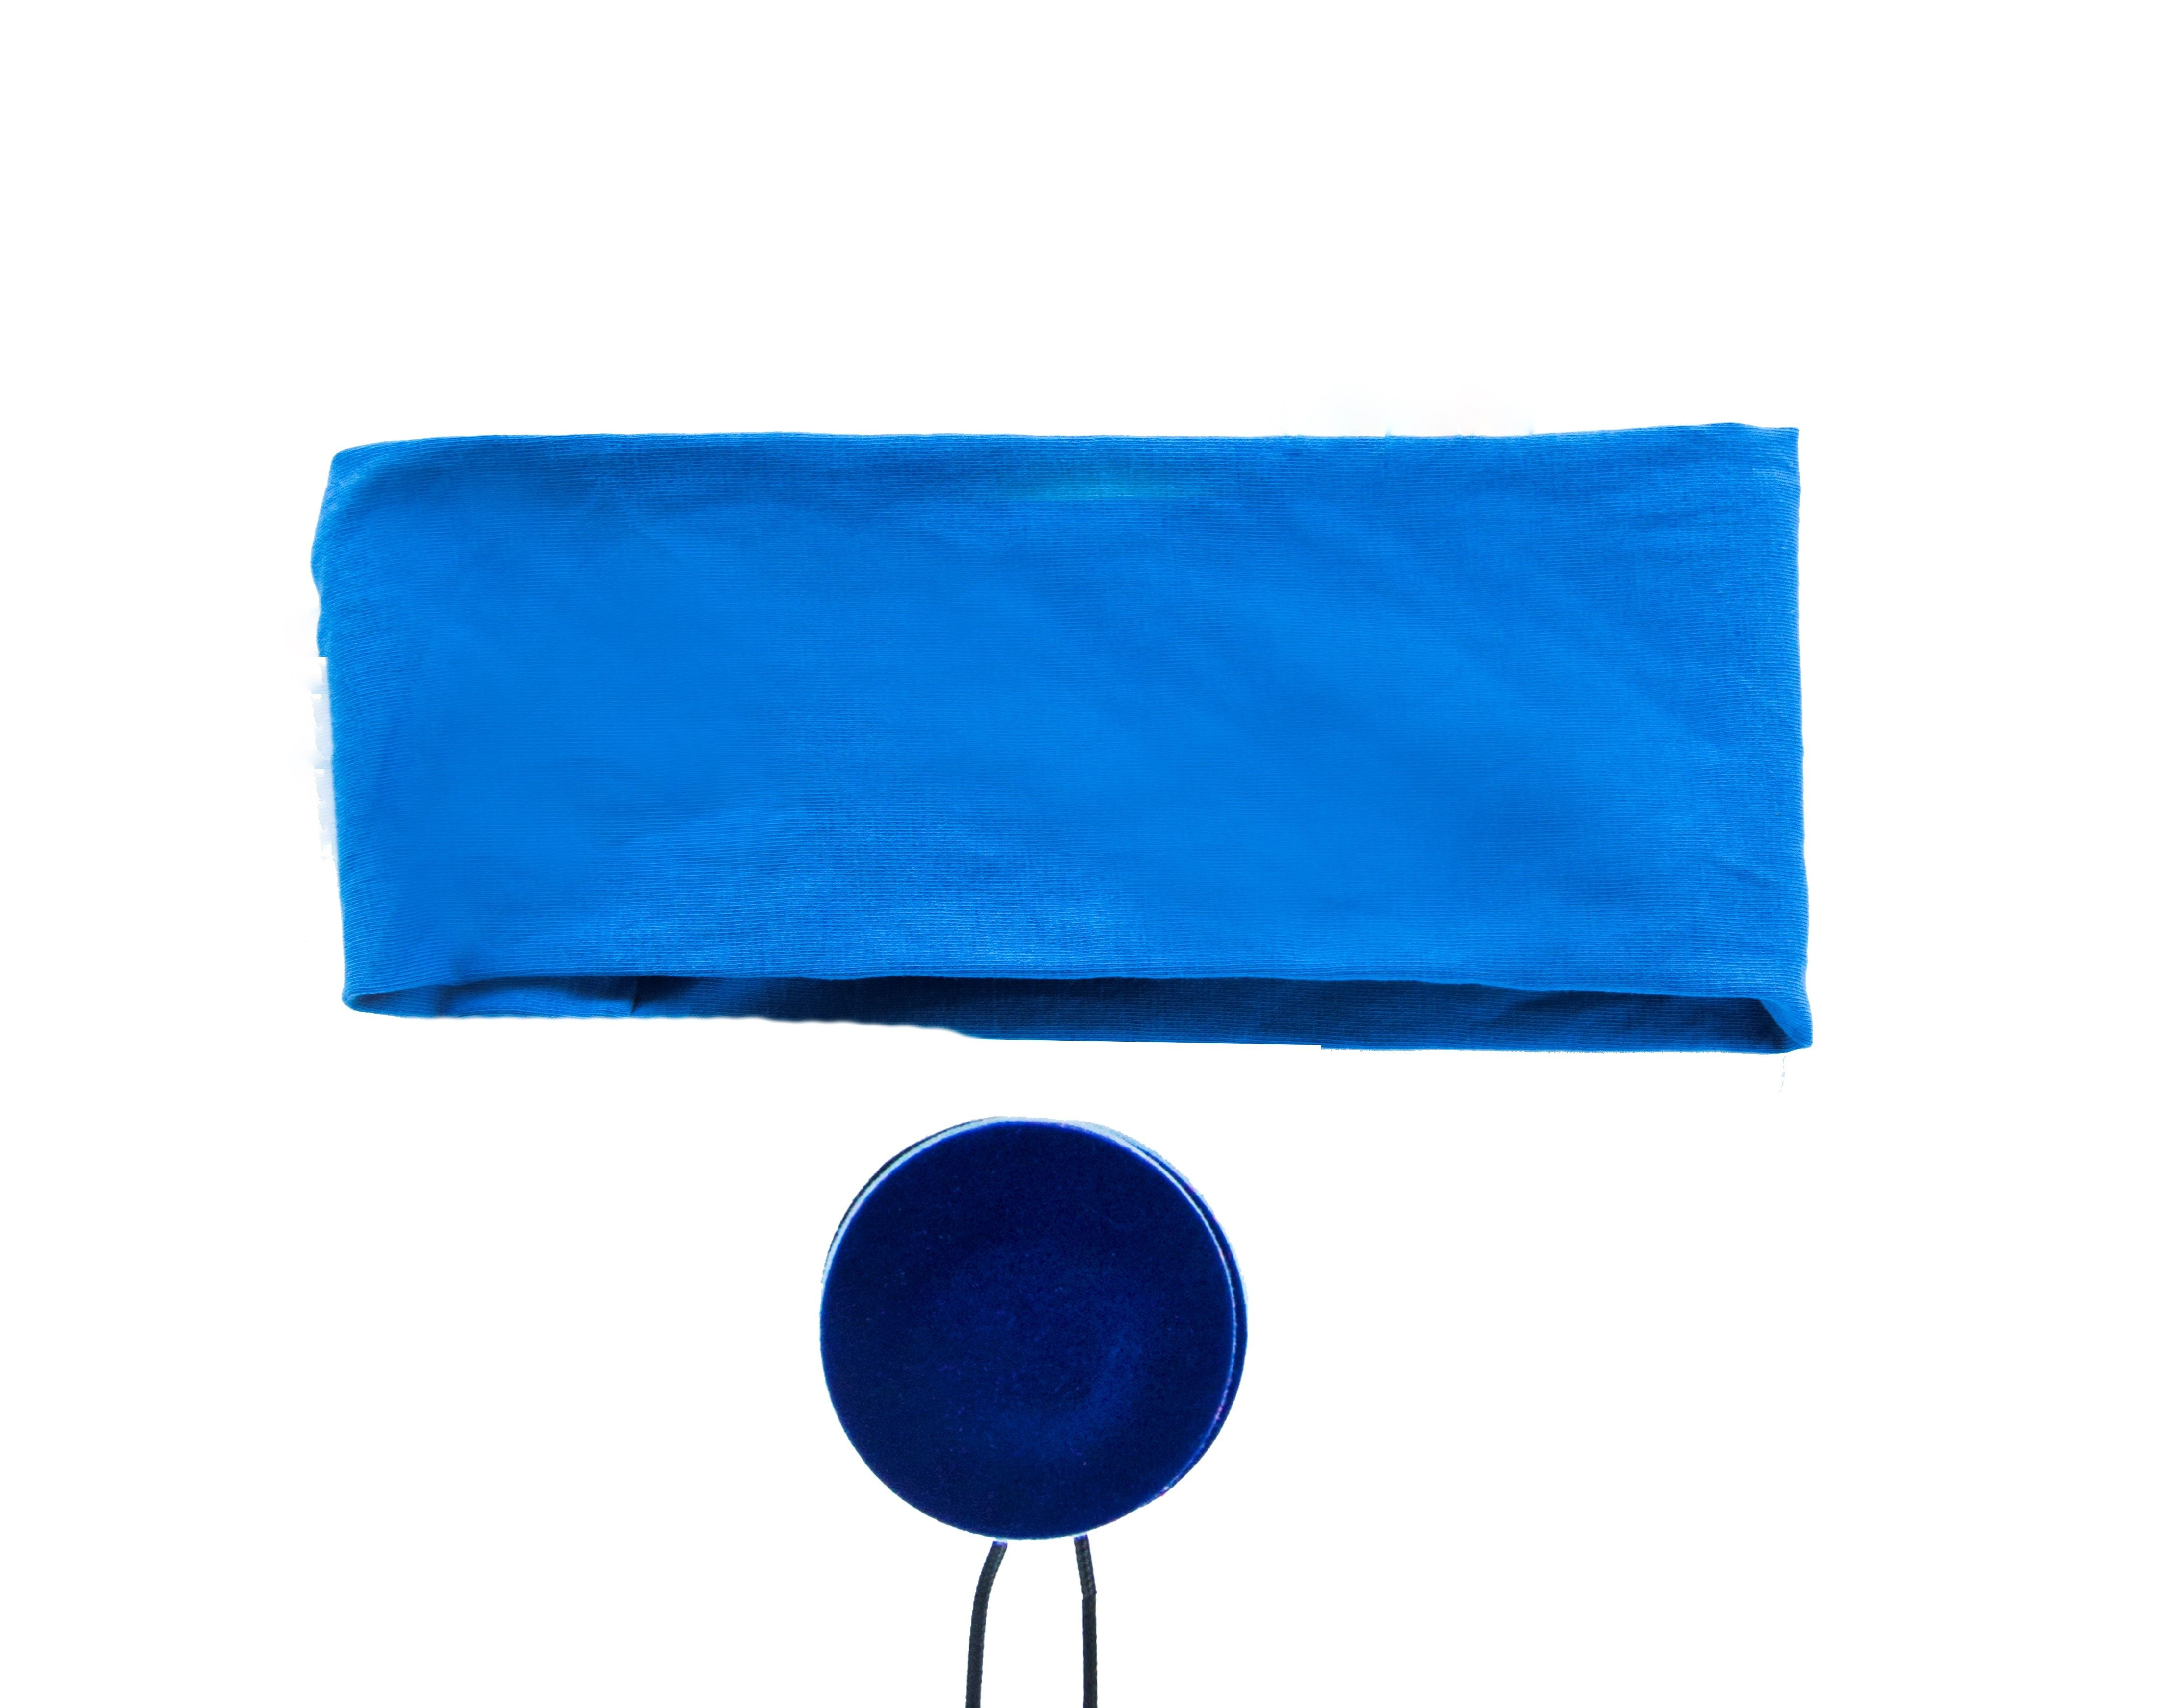 Blue Zenband Headband Flat Pillow Speakers Eye Mask Combo Daily Health Tips Comfortable Headbands Liver Health